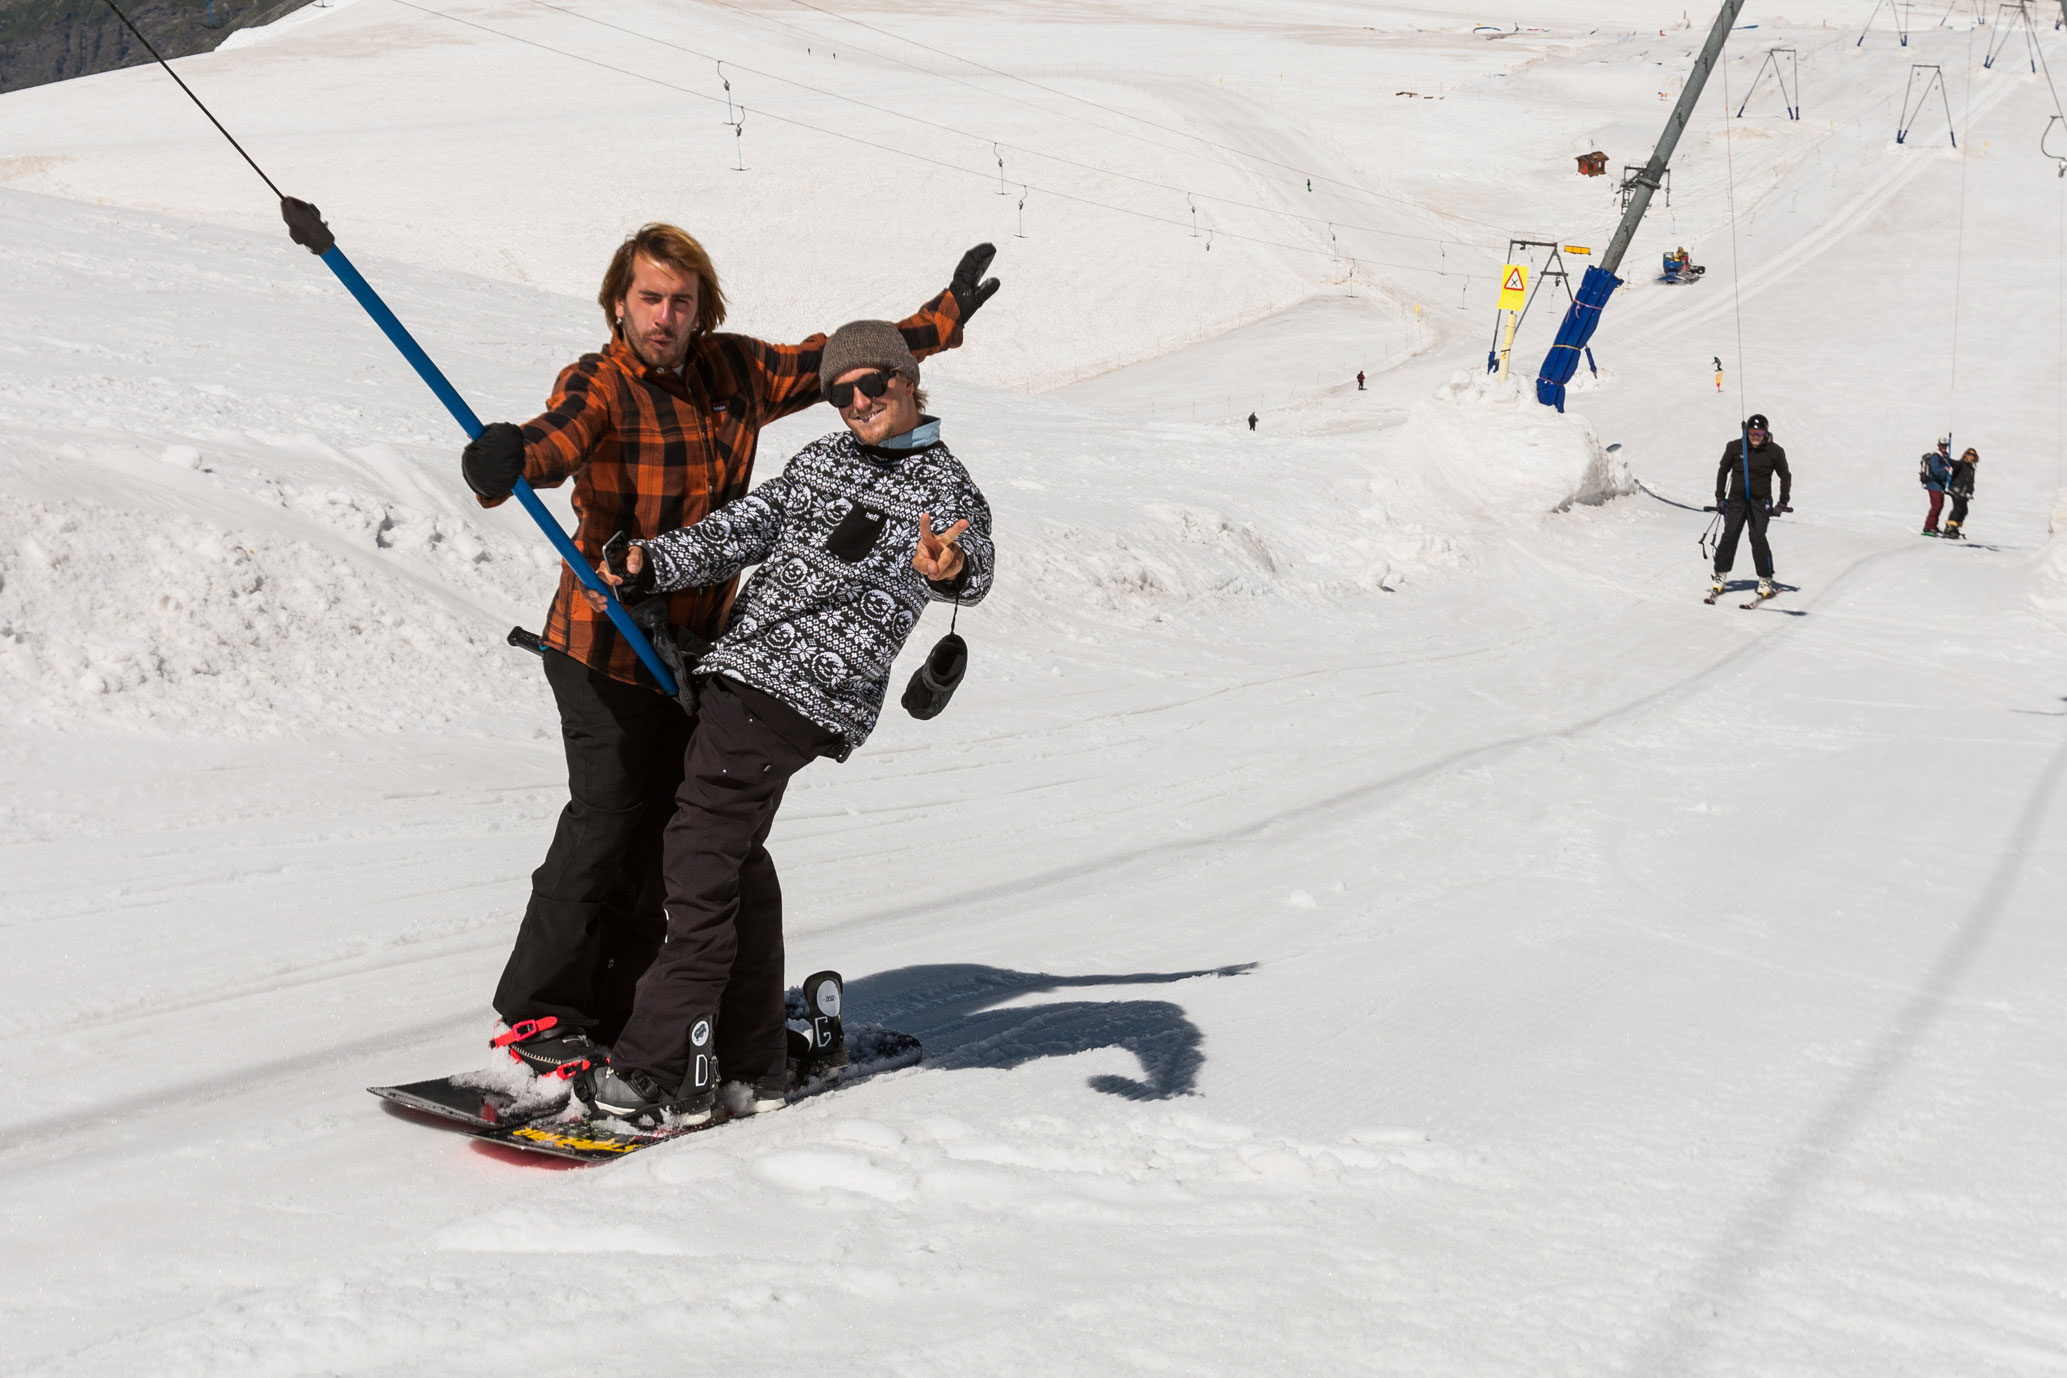 T-bar bro-down. Photo: Perly